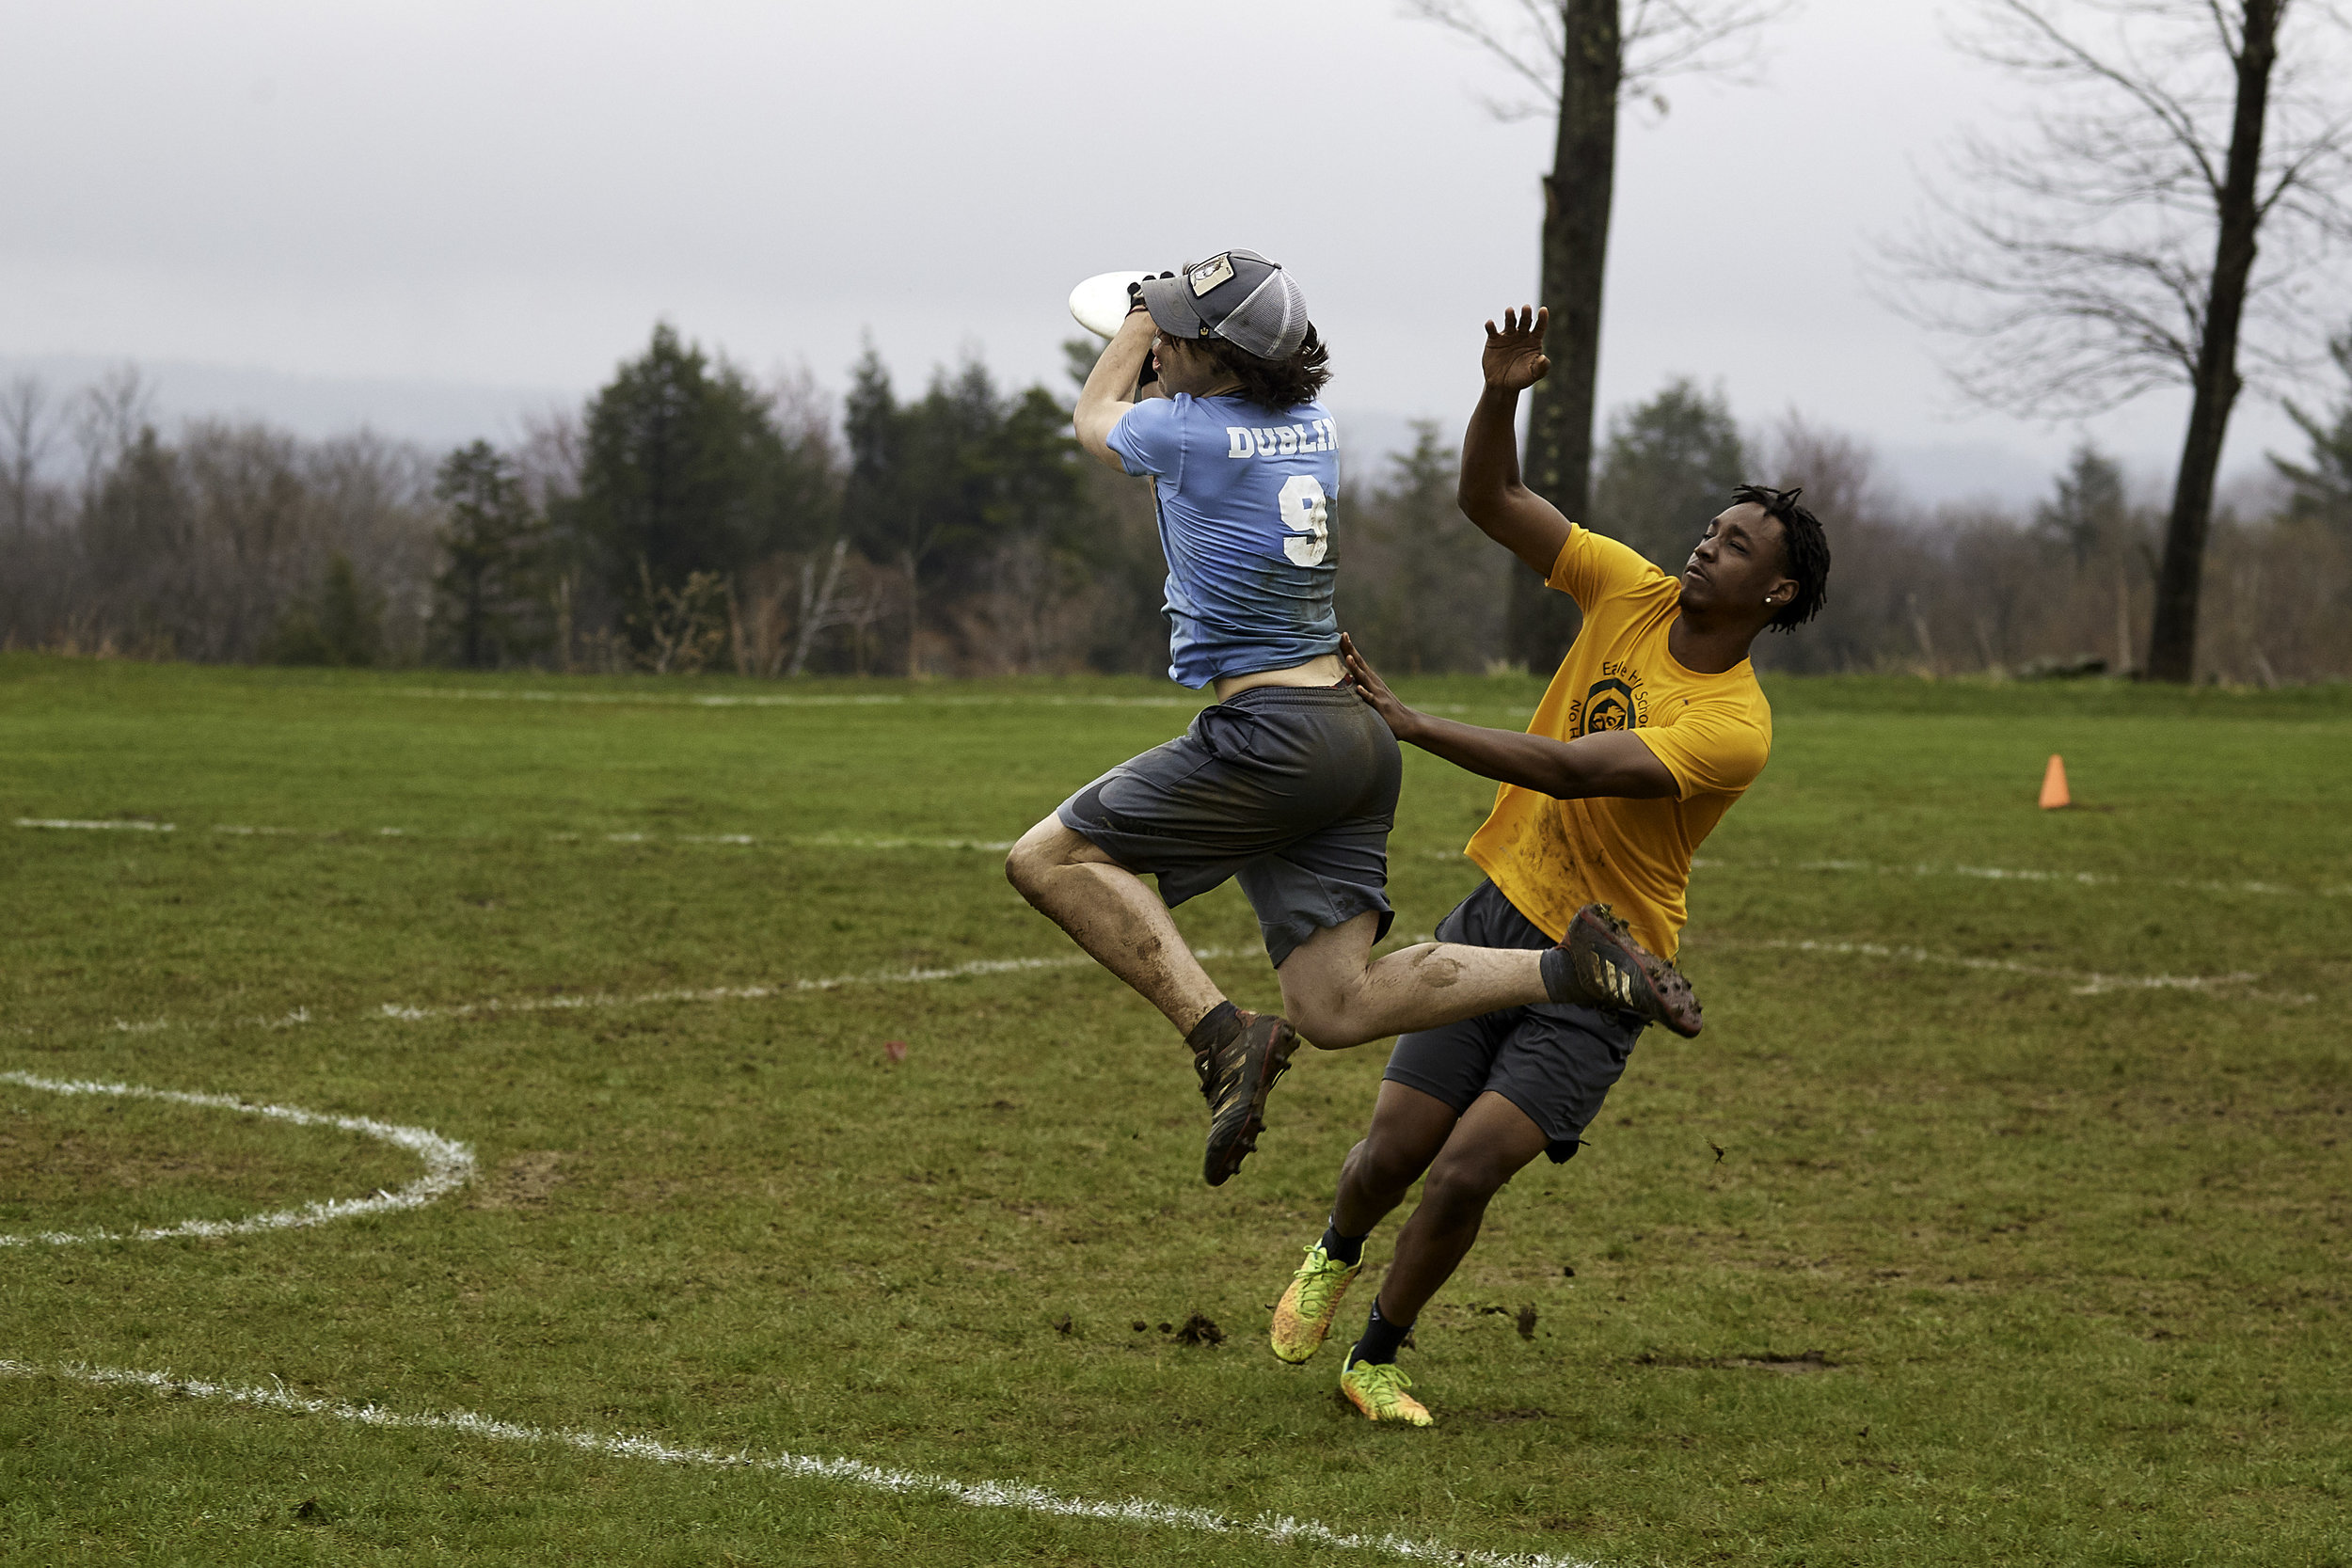 Ultimate Frisbee vs. Eagle Hill School - May 3, 2019 - 188667.jpg